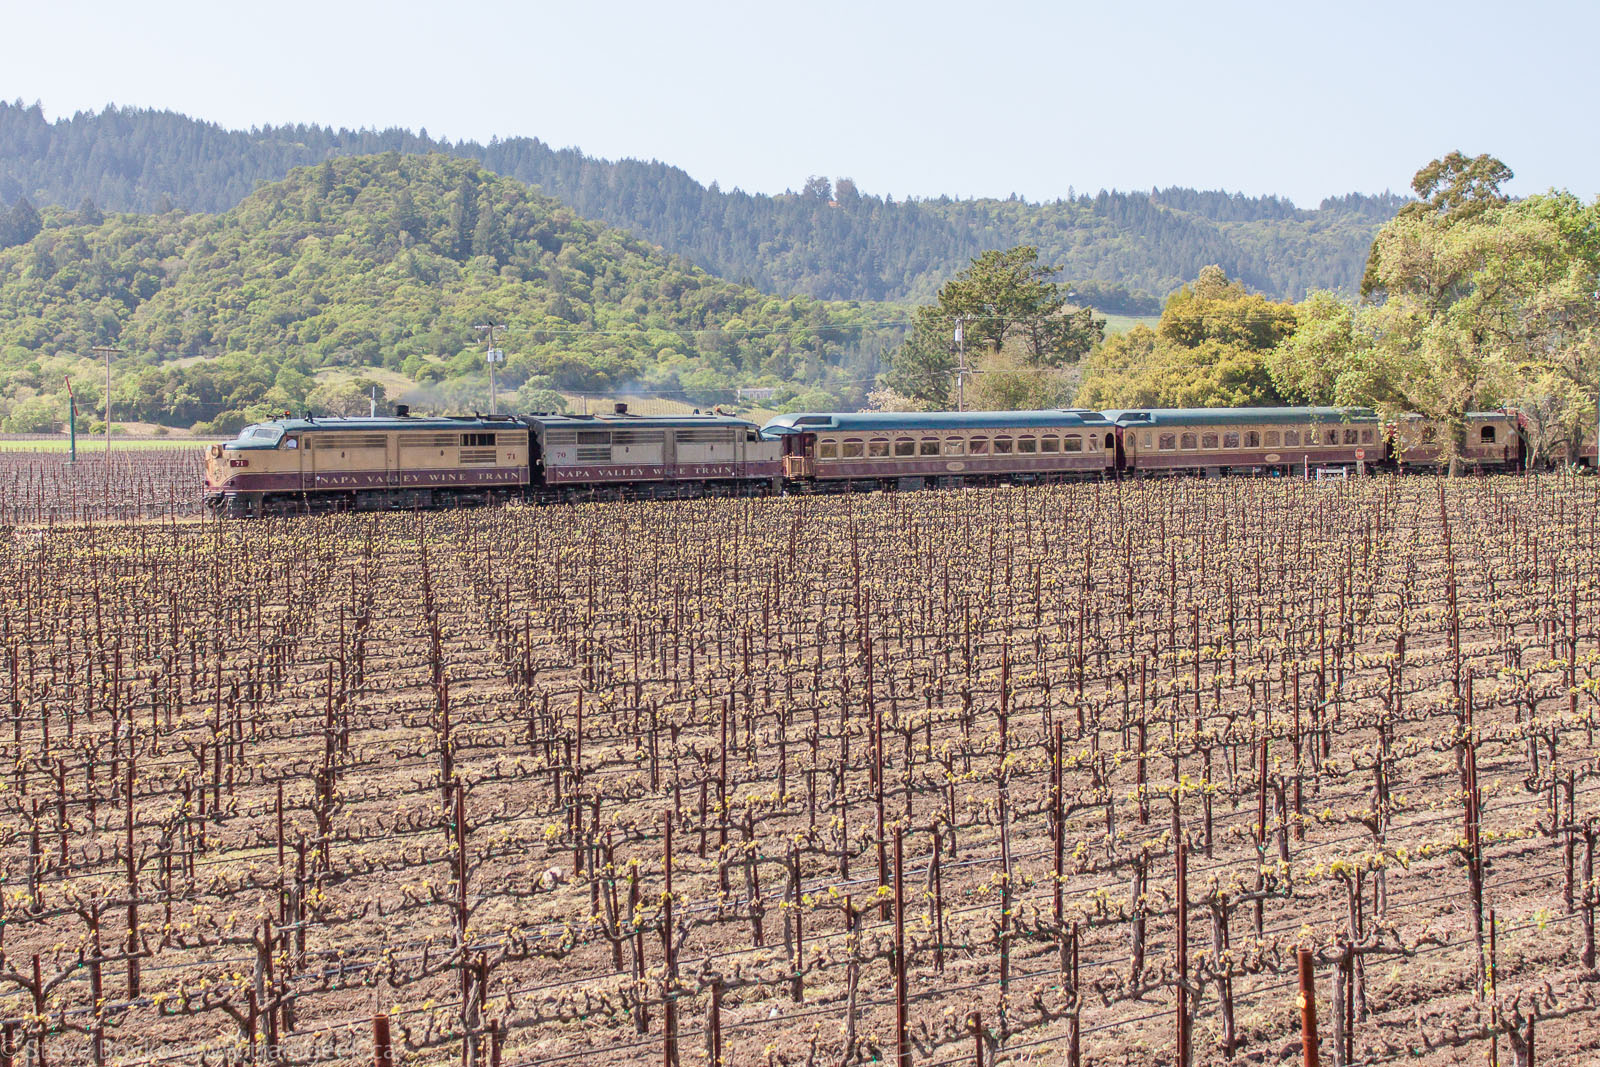 The Napa Valley Wine Train across a field of grapes